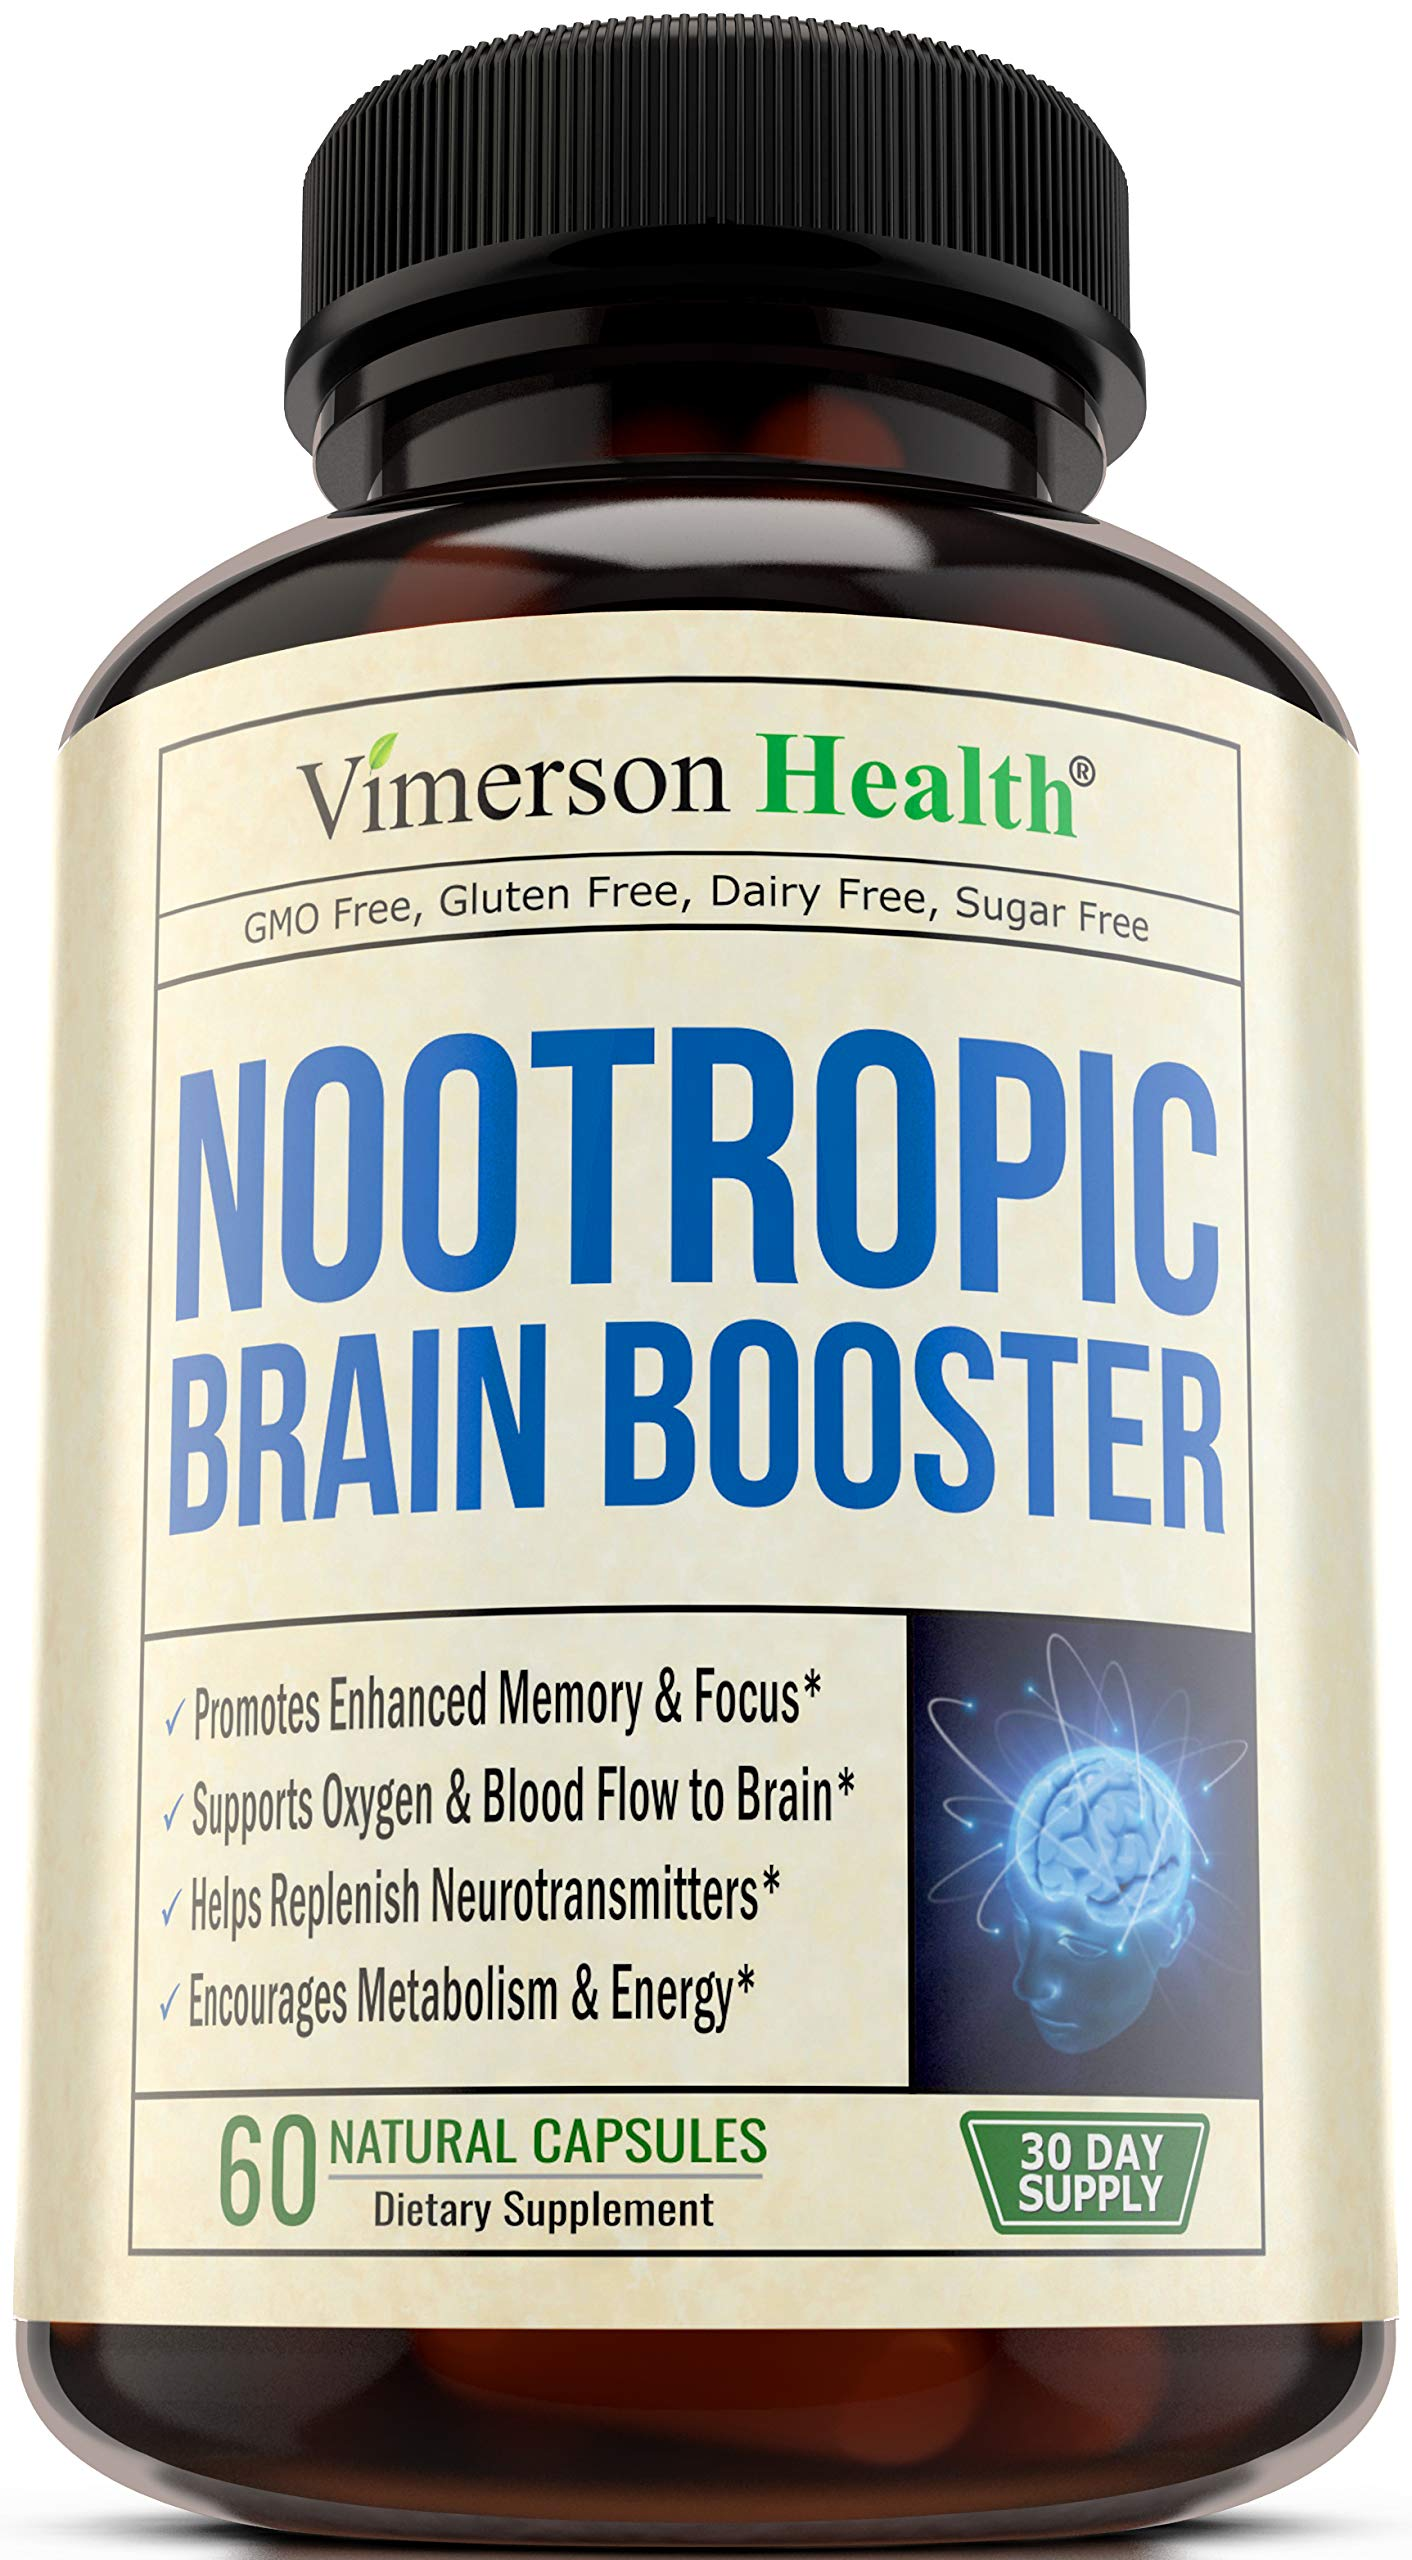 Nootropic Brain Booster with Copper. Memory, Mind & Focus - Promotes Concentration, Cognition & Mental Performance. Boosts Metabolism & Energy. Best Supplement with Gaba + DMAE + Bacopa + Vitamins